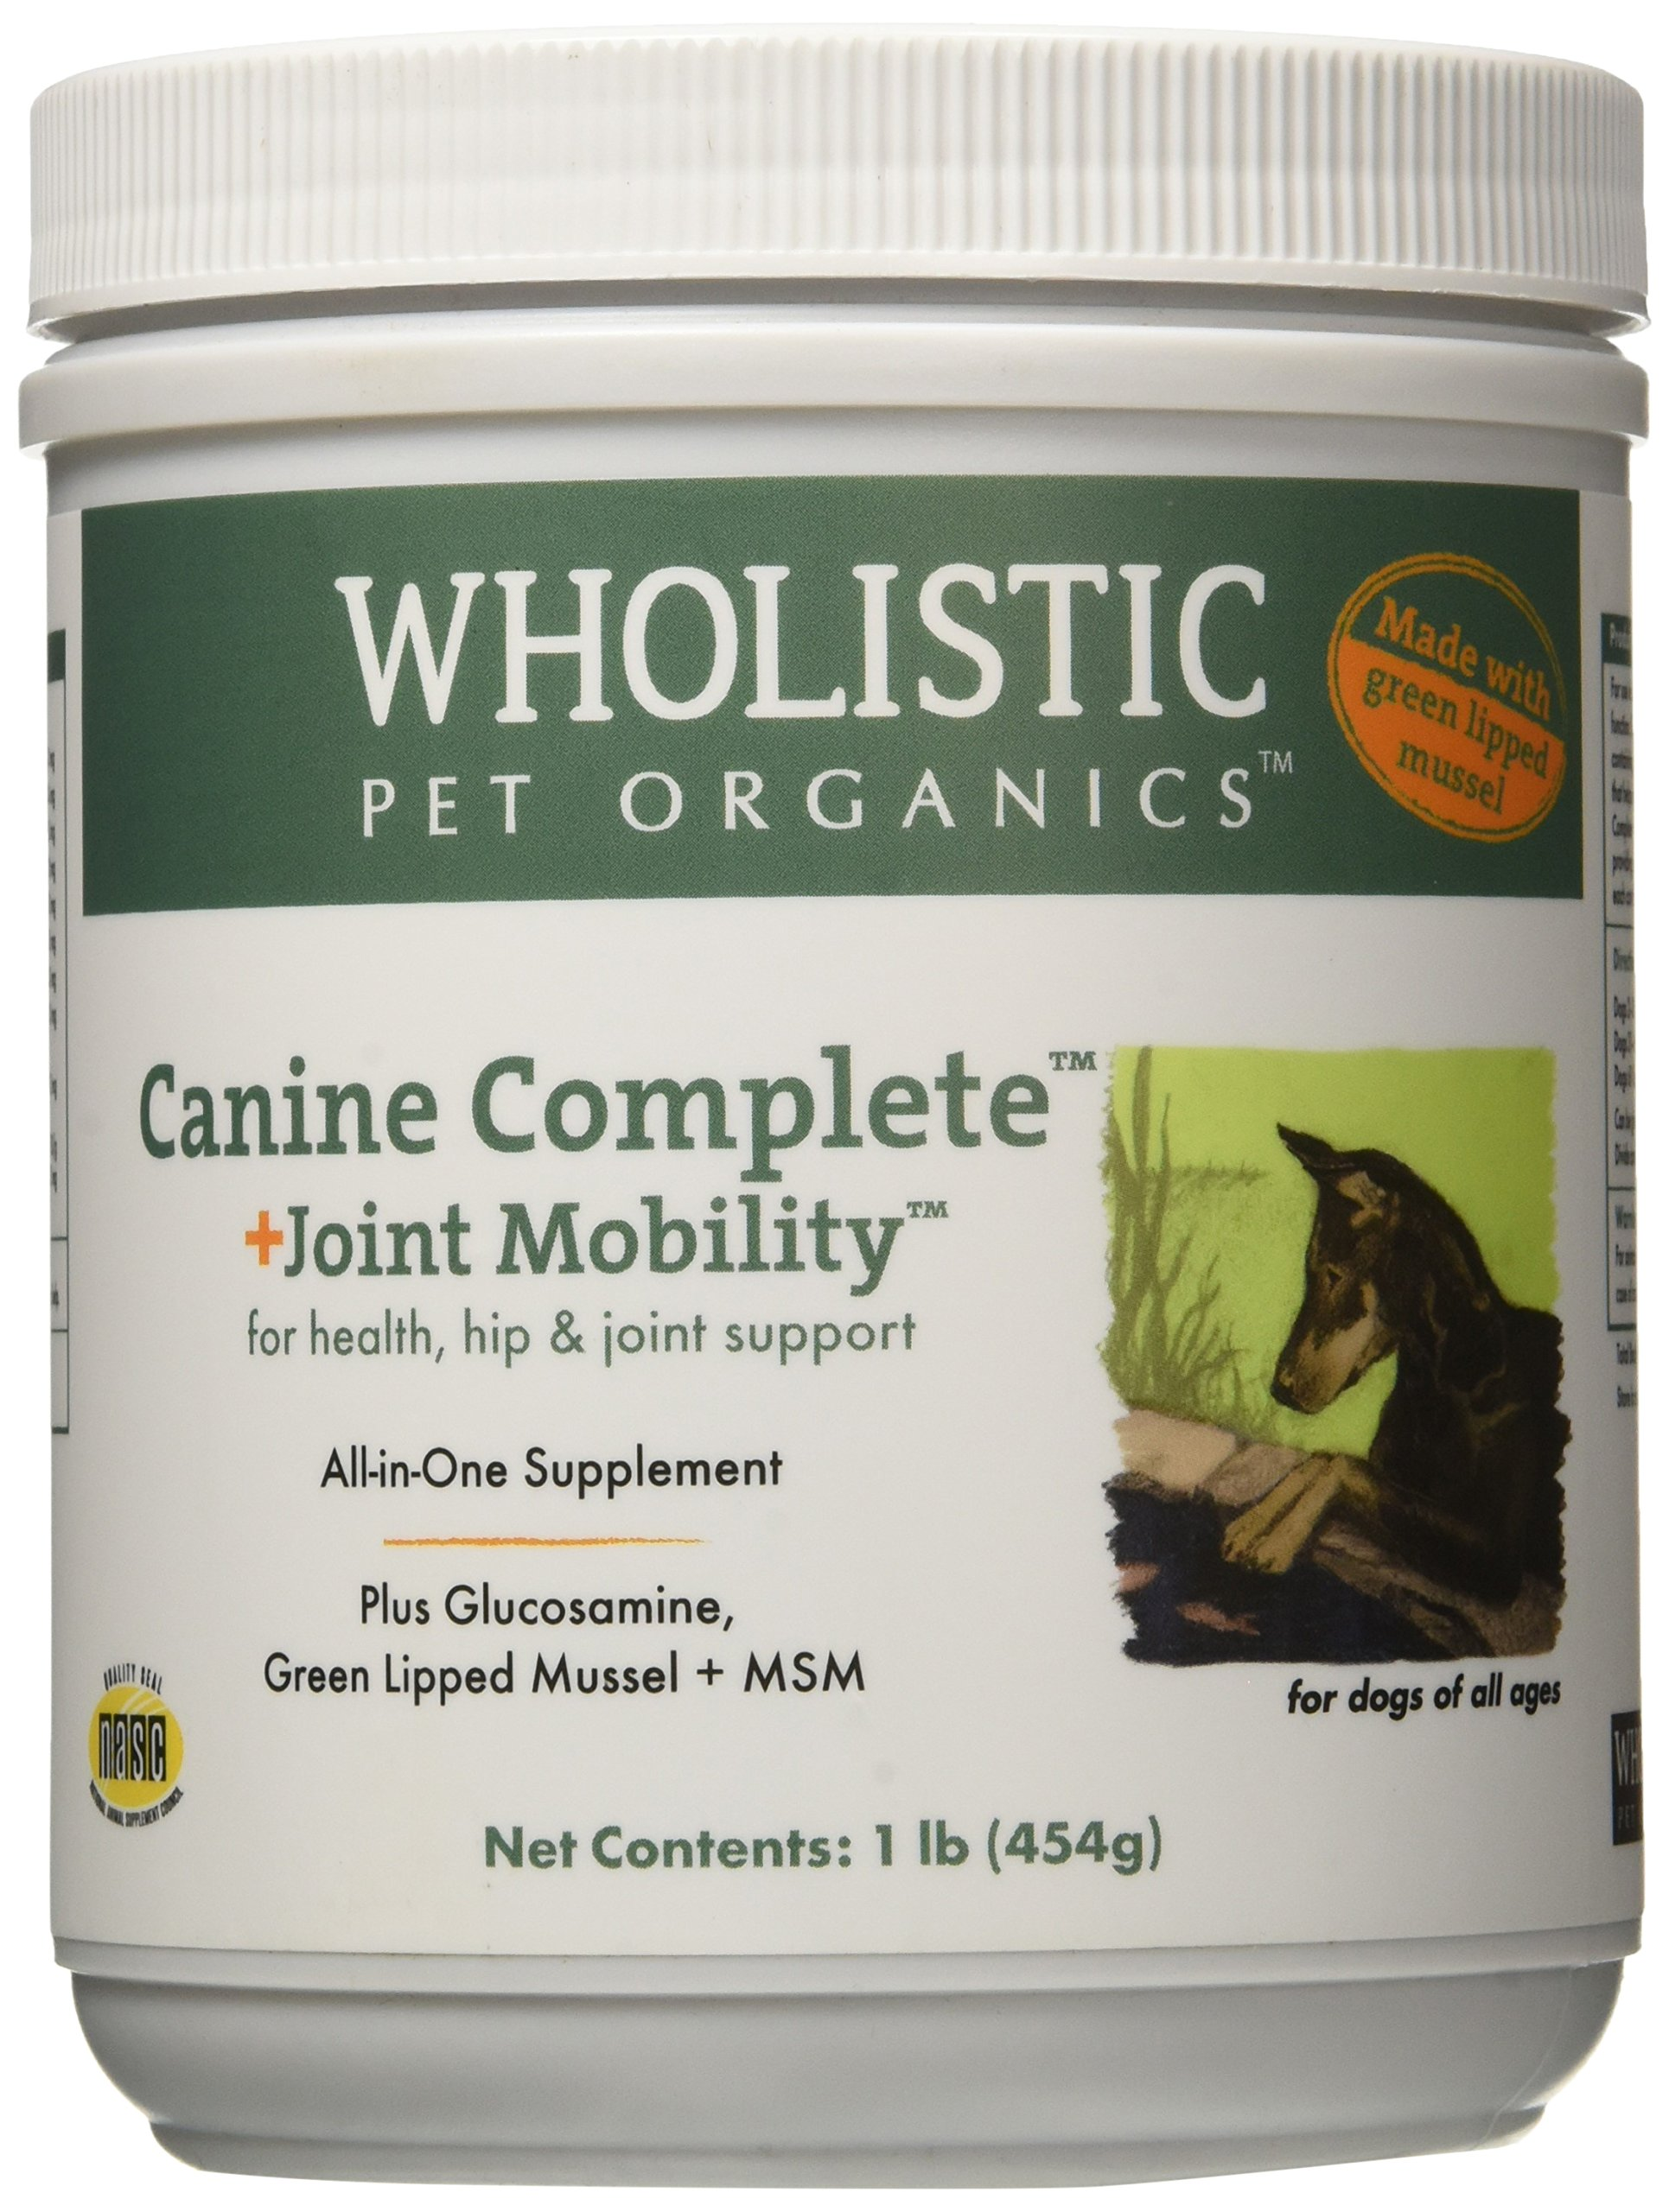 Wholistic Pet Organics Canine Complete Plus Joint Mobility with Green Lipped Muscle Supplement, 1 lb by Wholistic Pet Organics (Image #1)